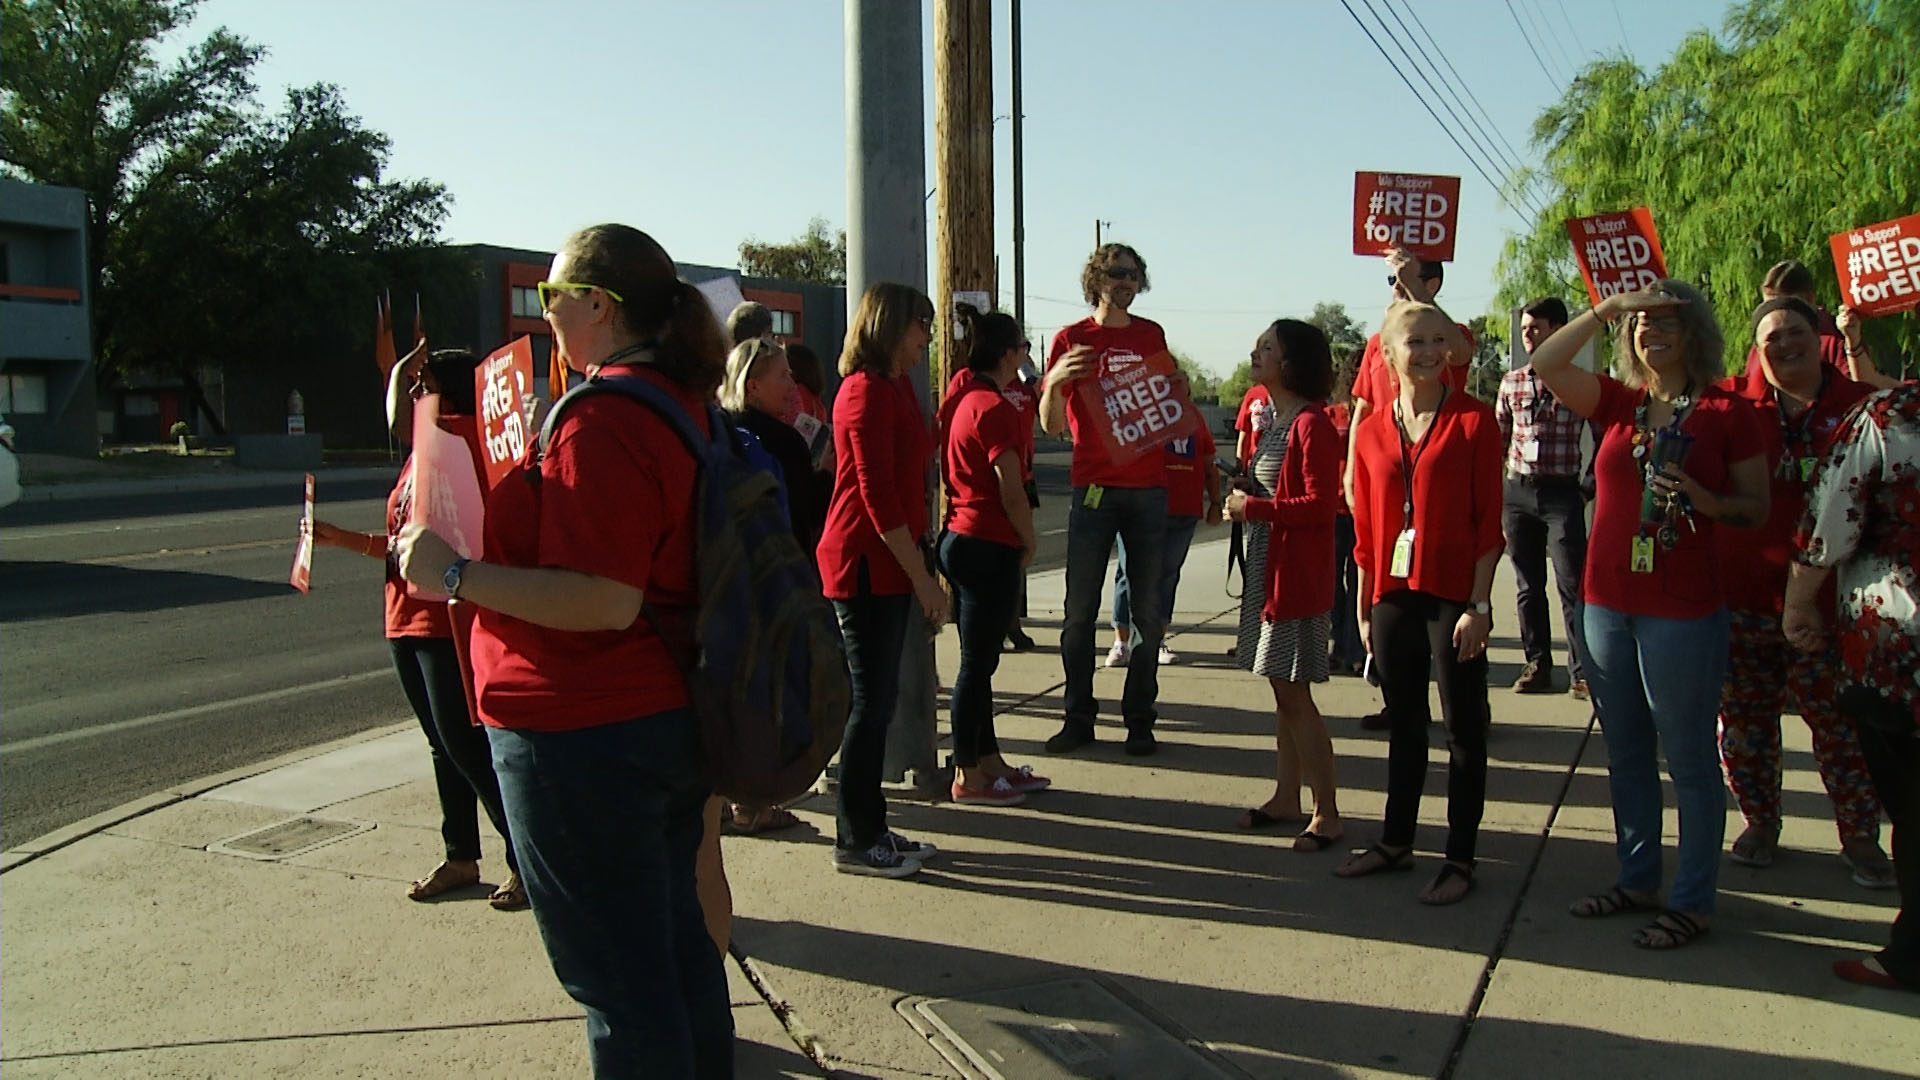 Red For Ed protests at Amphitheater High School in Tucson.